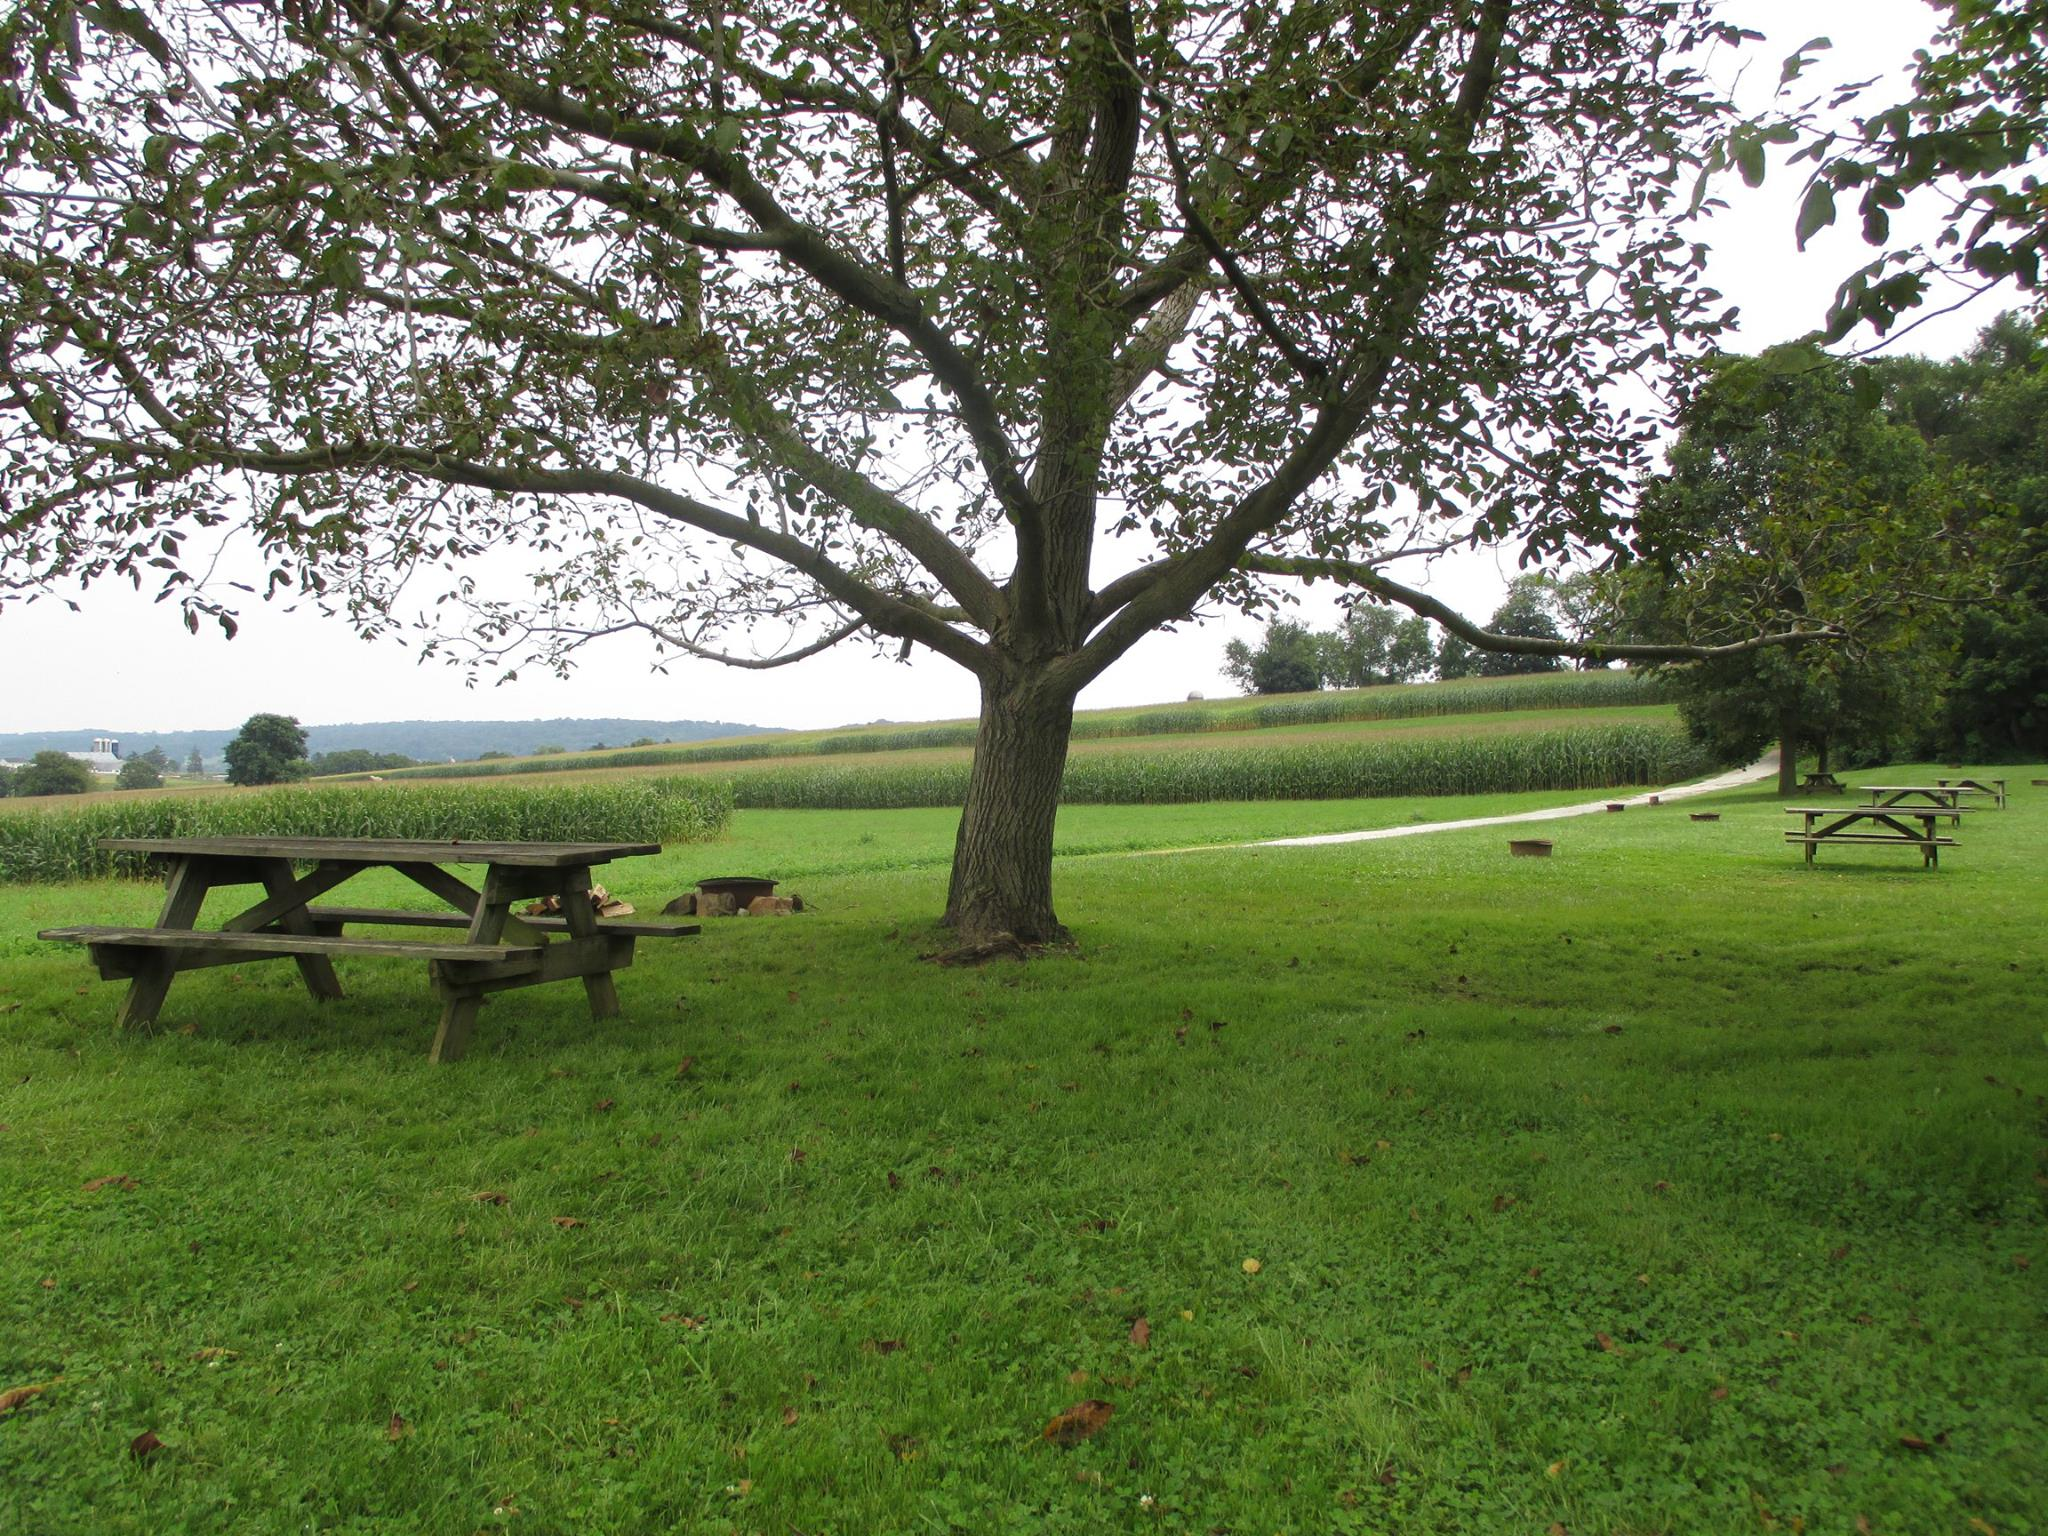 Sitting areas by Amish field